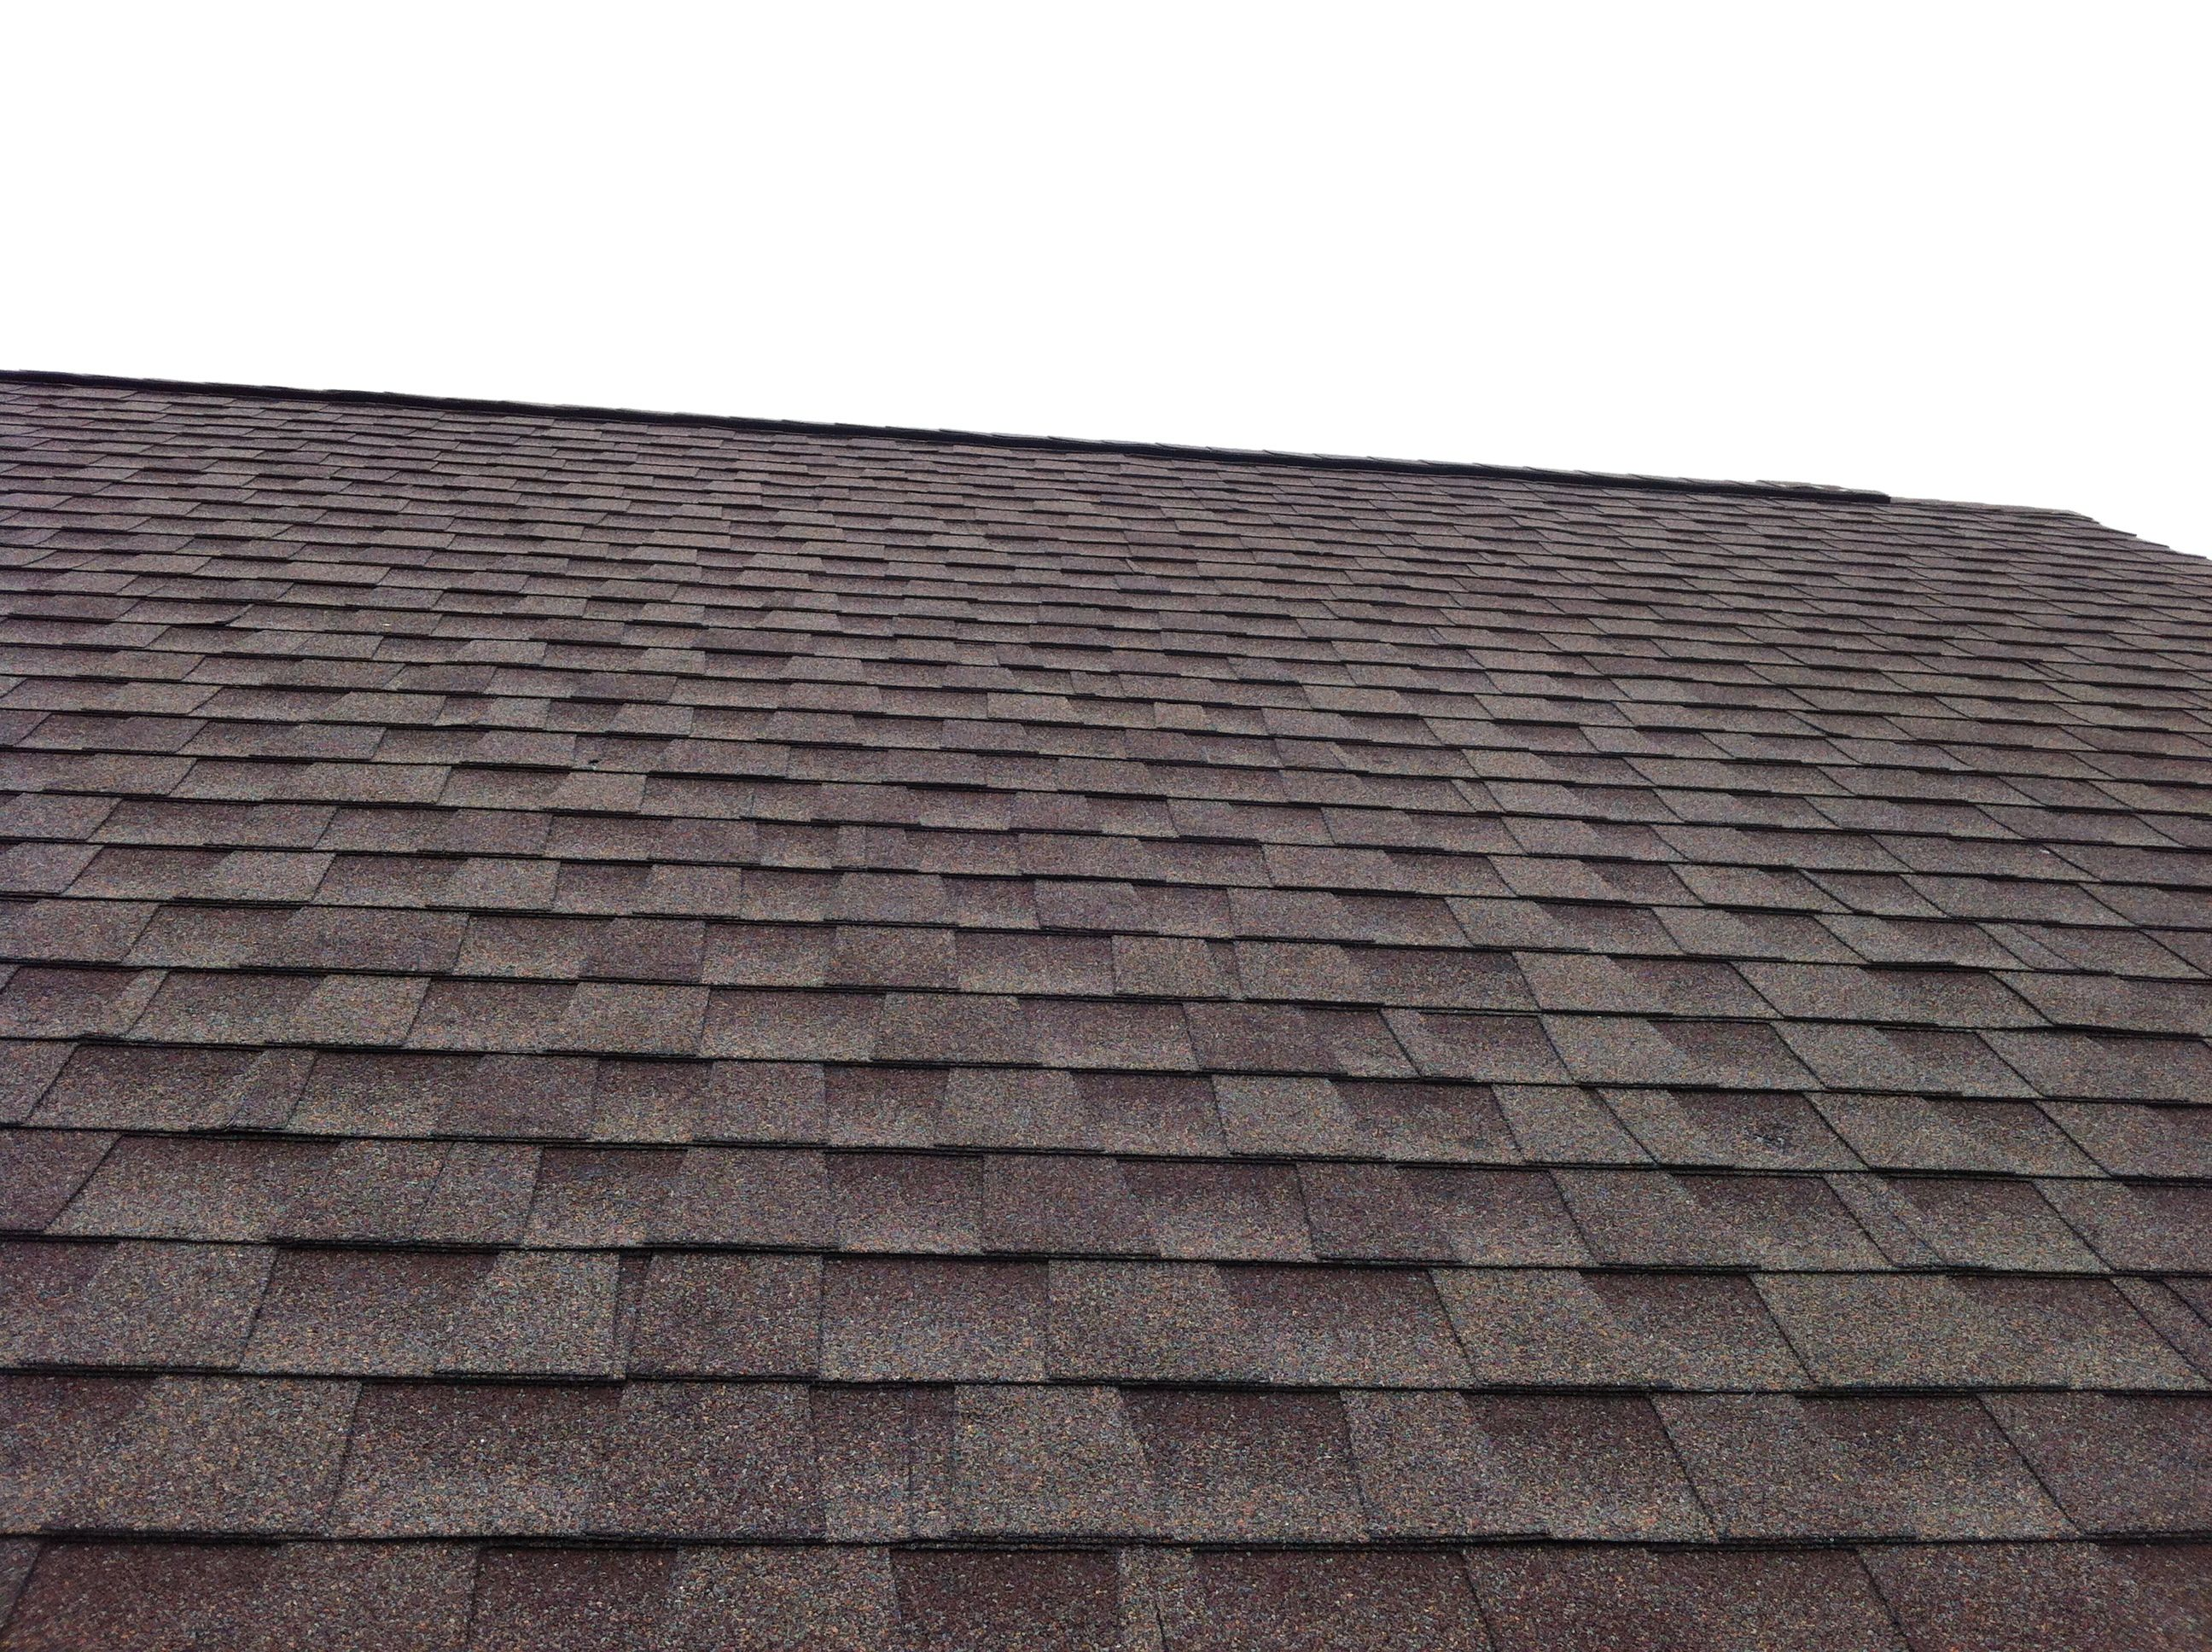 Roof Shingles Roofing Shingles Pinterest Asphalt